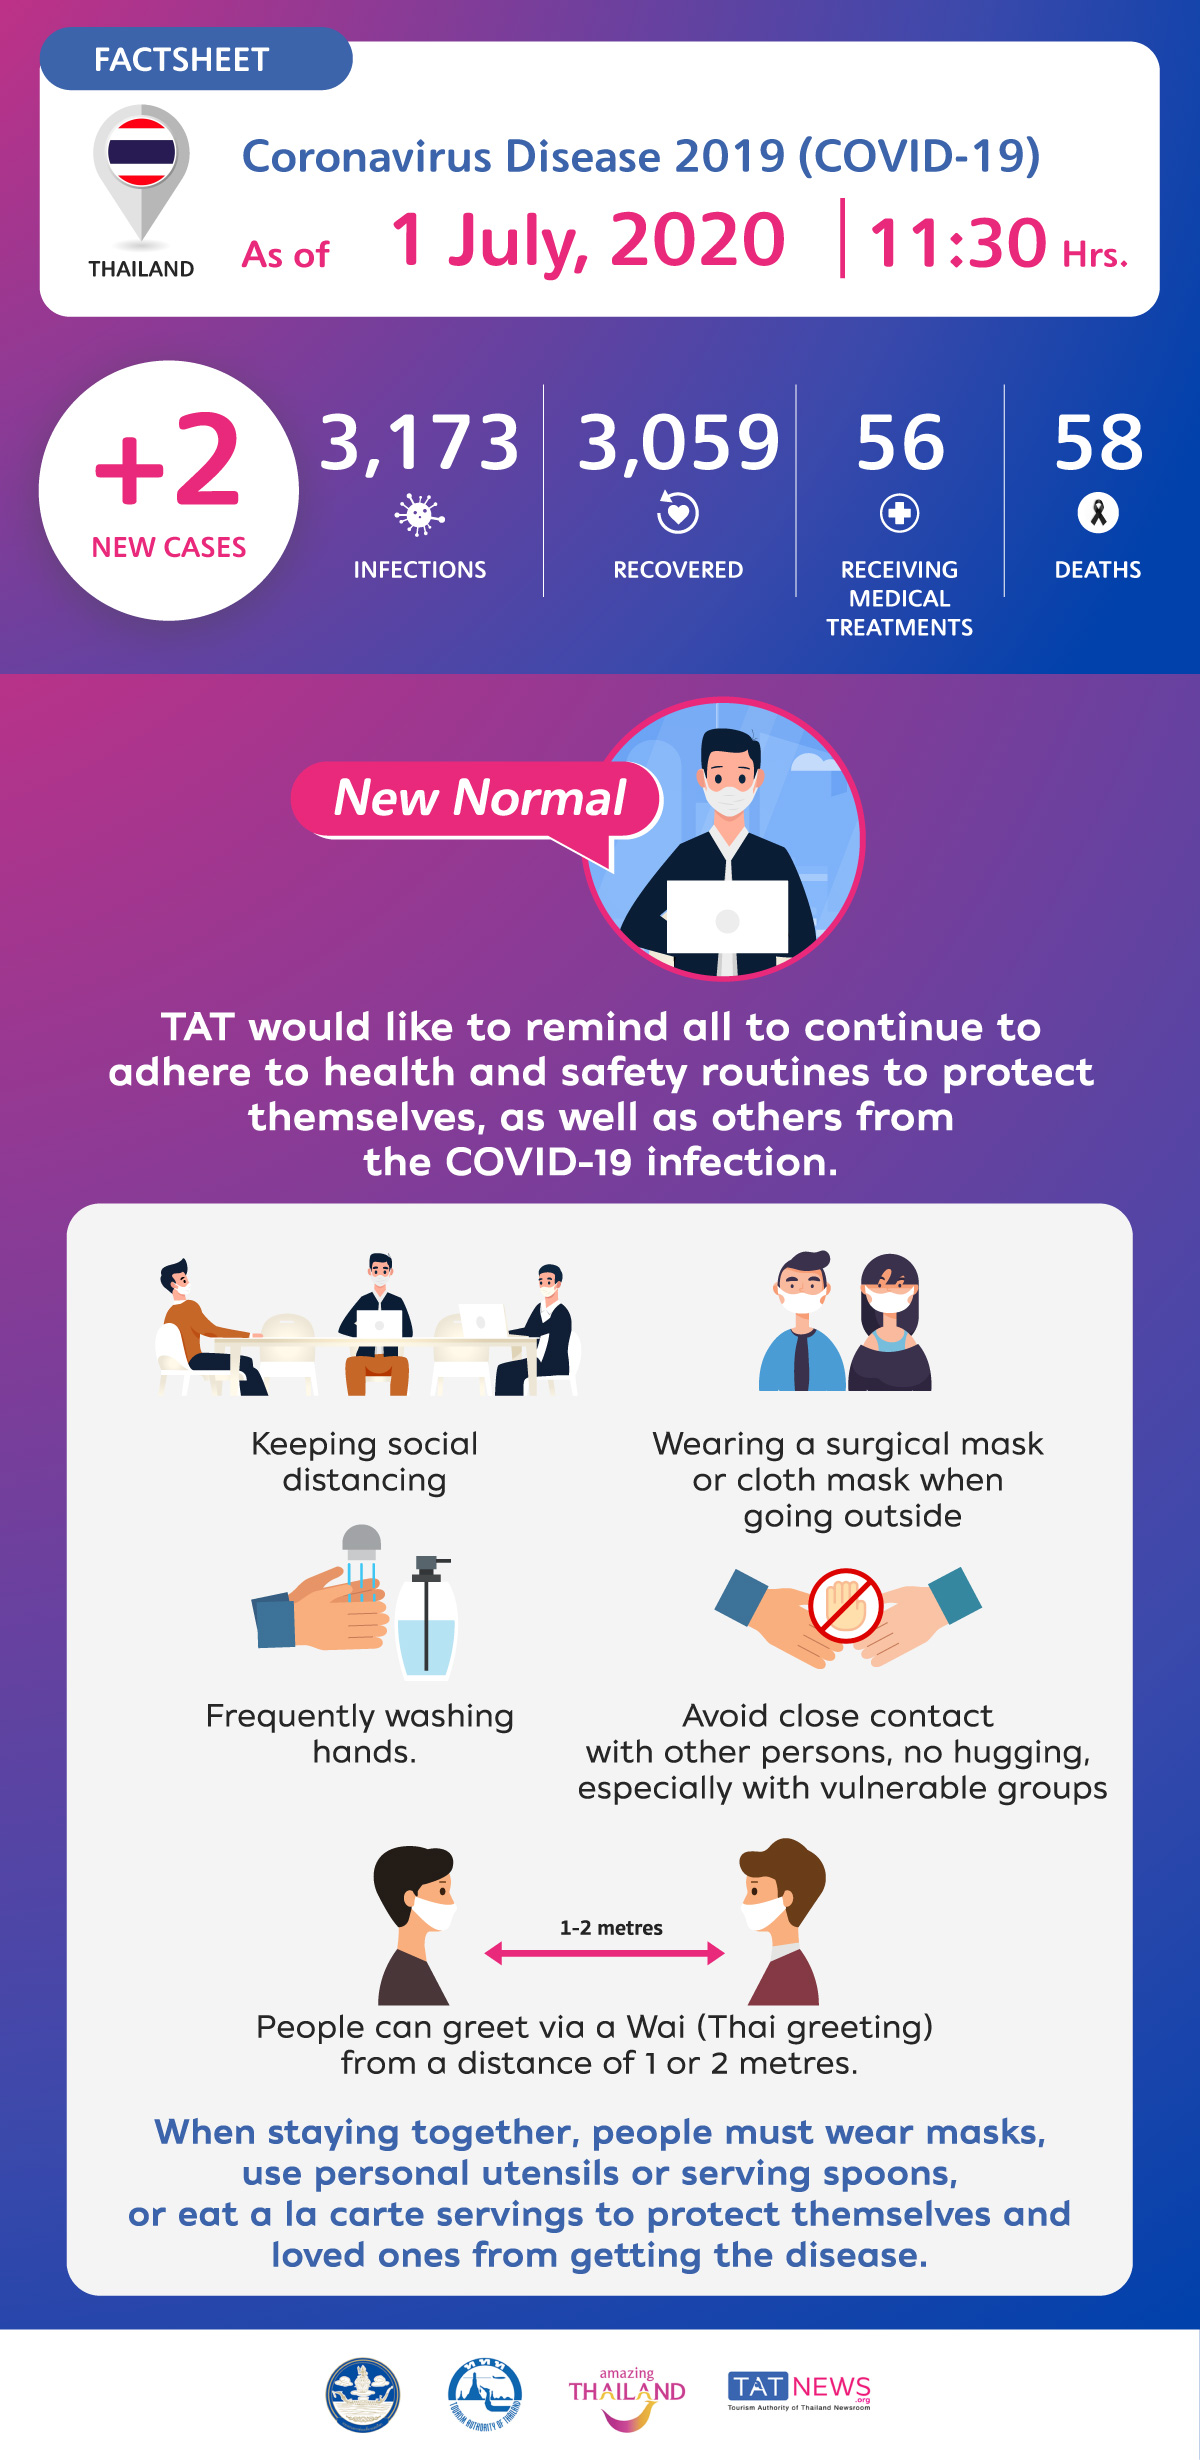 Coronavirus Disease 2019 (COVID-19) situation in Thailand as of 1 July 2020, 11.30 Hrs.